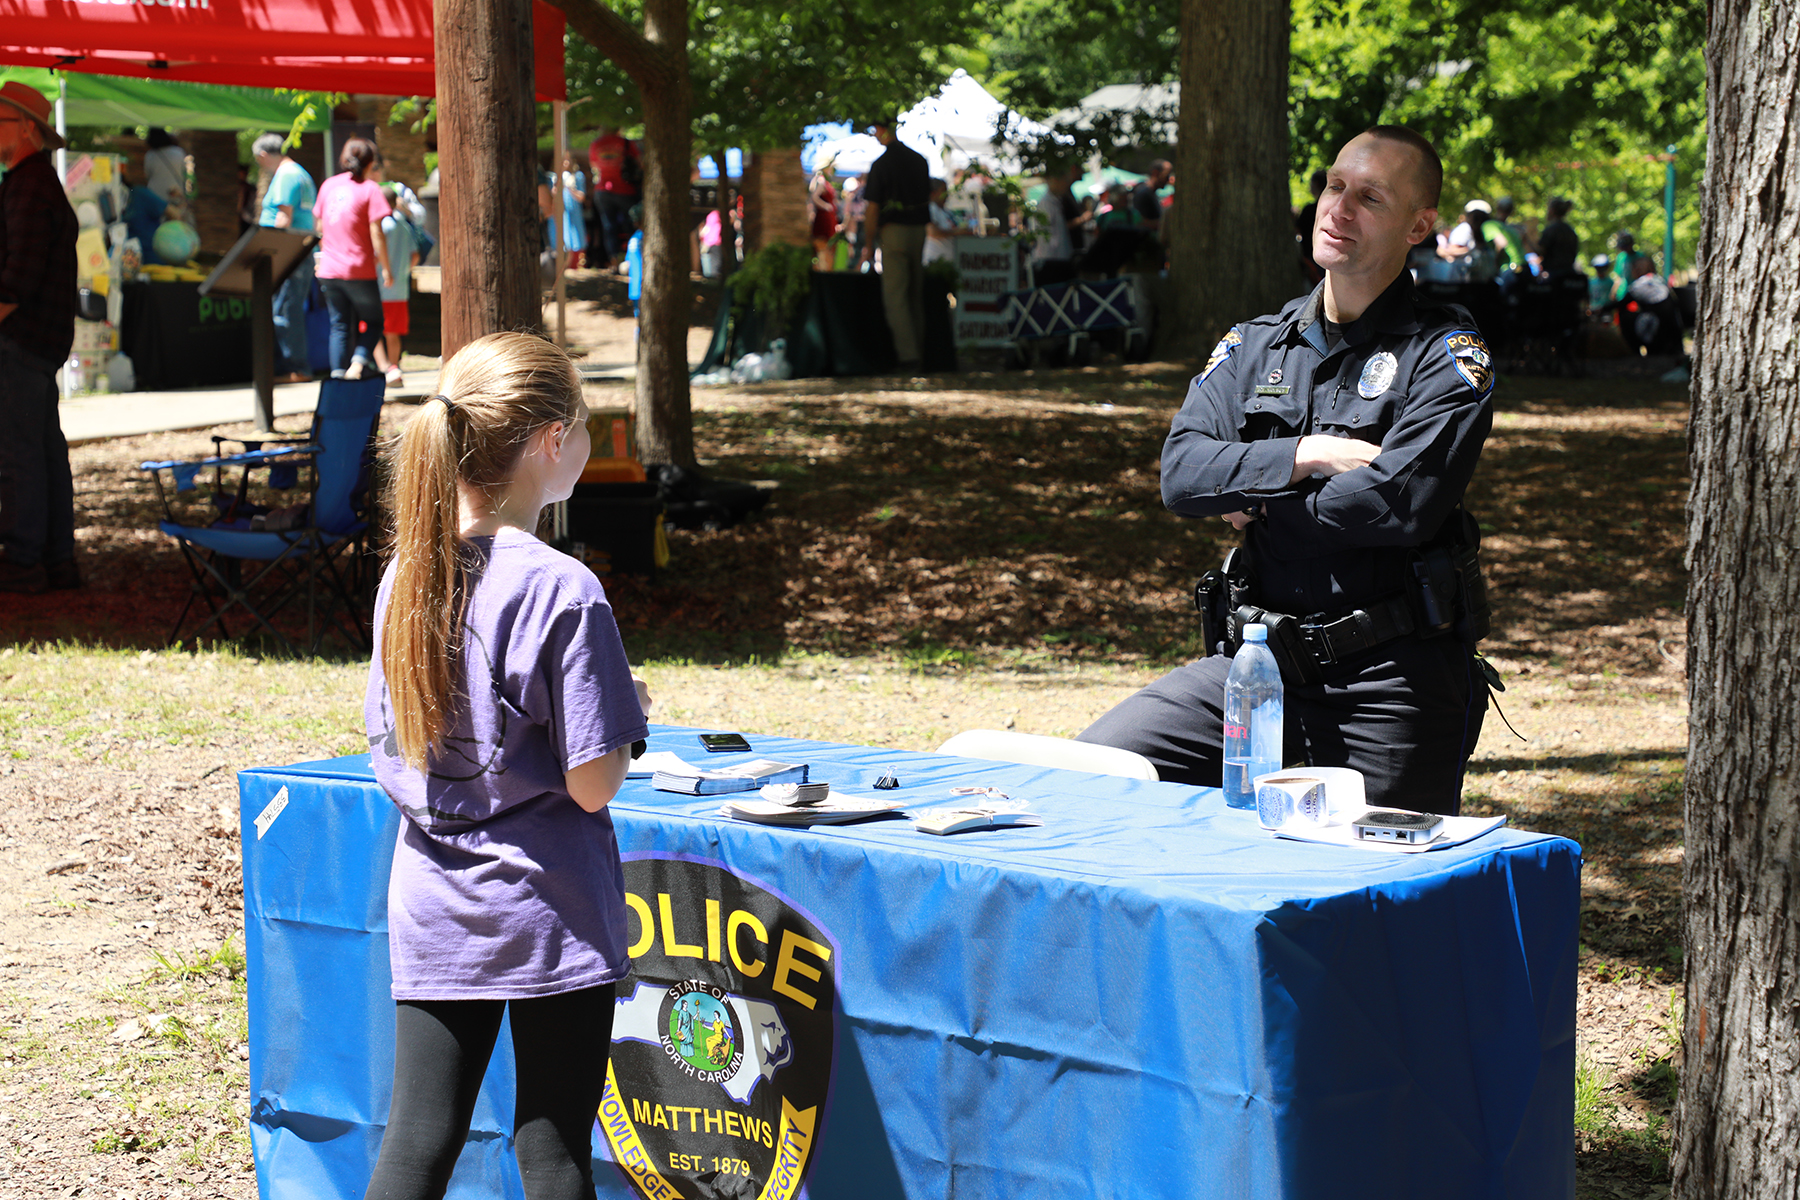 kids in nature squirrel lake matthews police.jpg